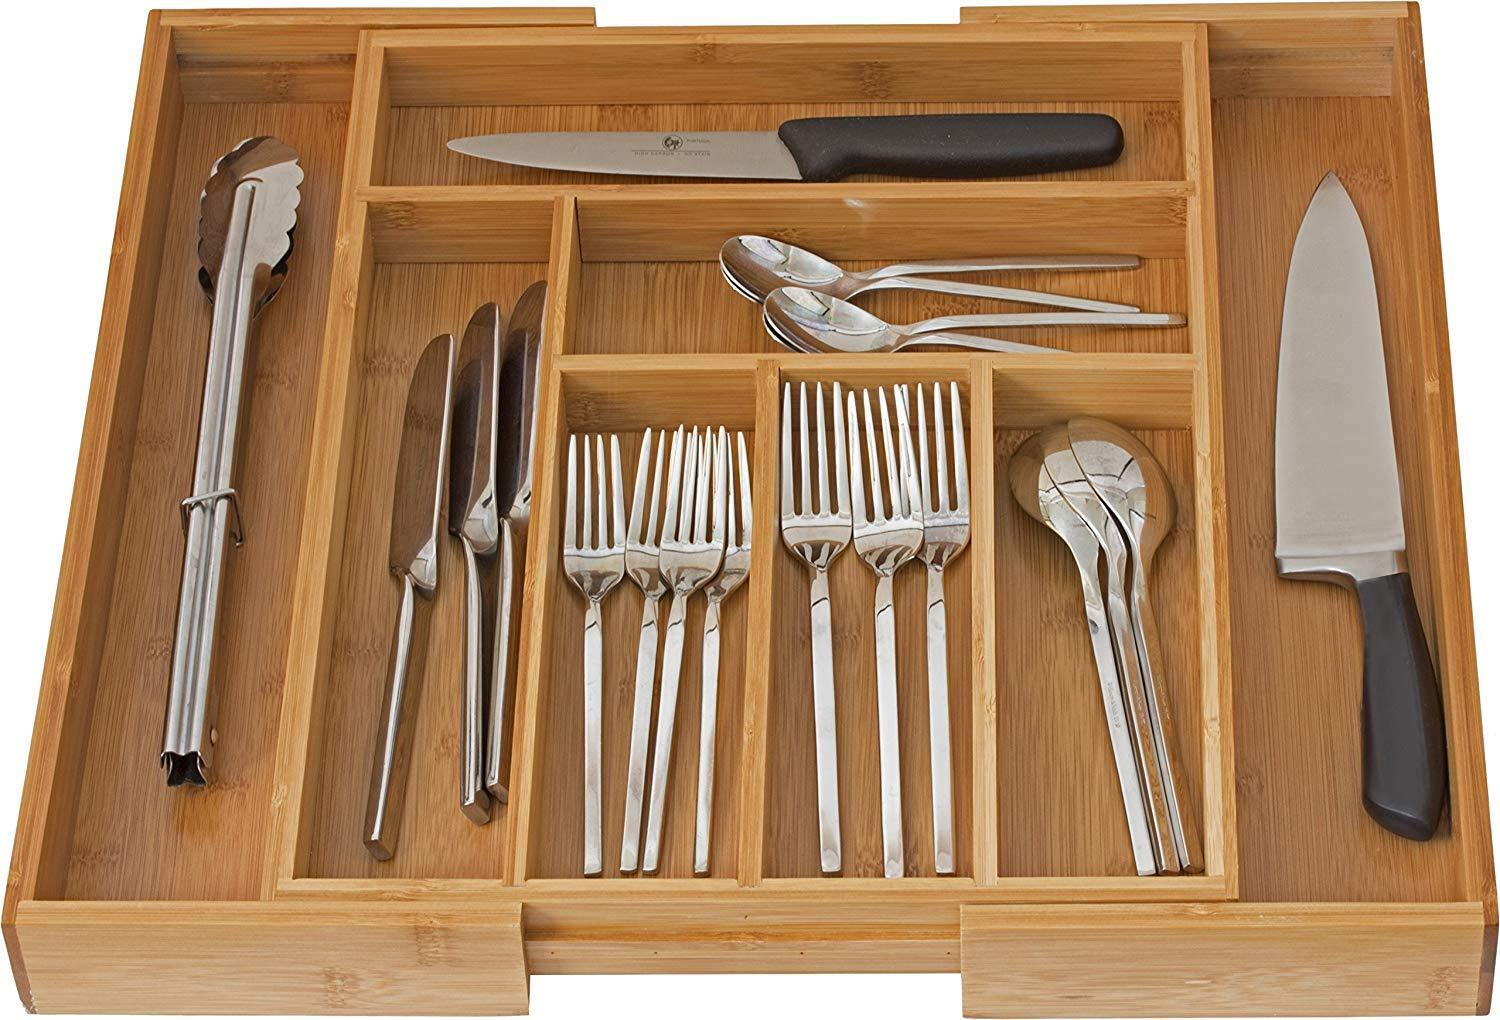 Expandable Cutlery Flatware Drawer Utensil Tray Kitchen Organizer Storage Bamboo